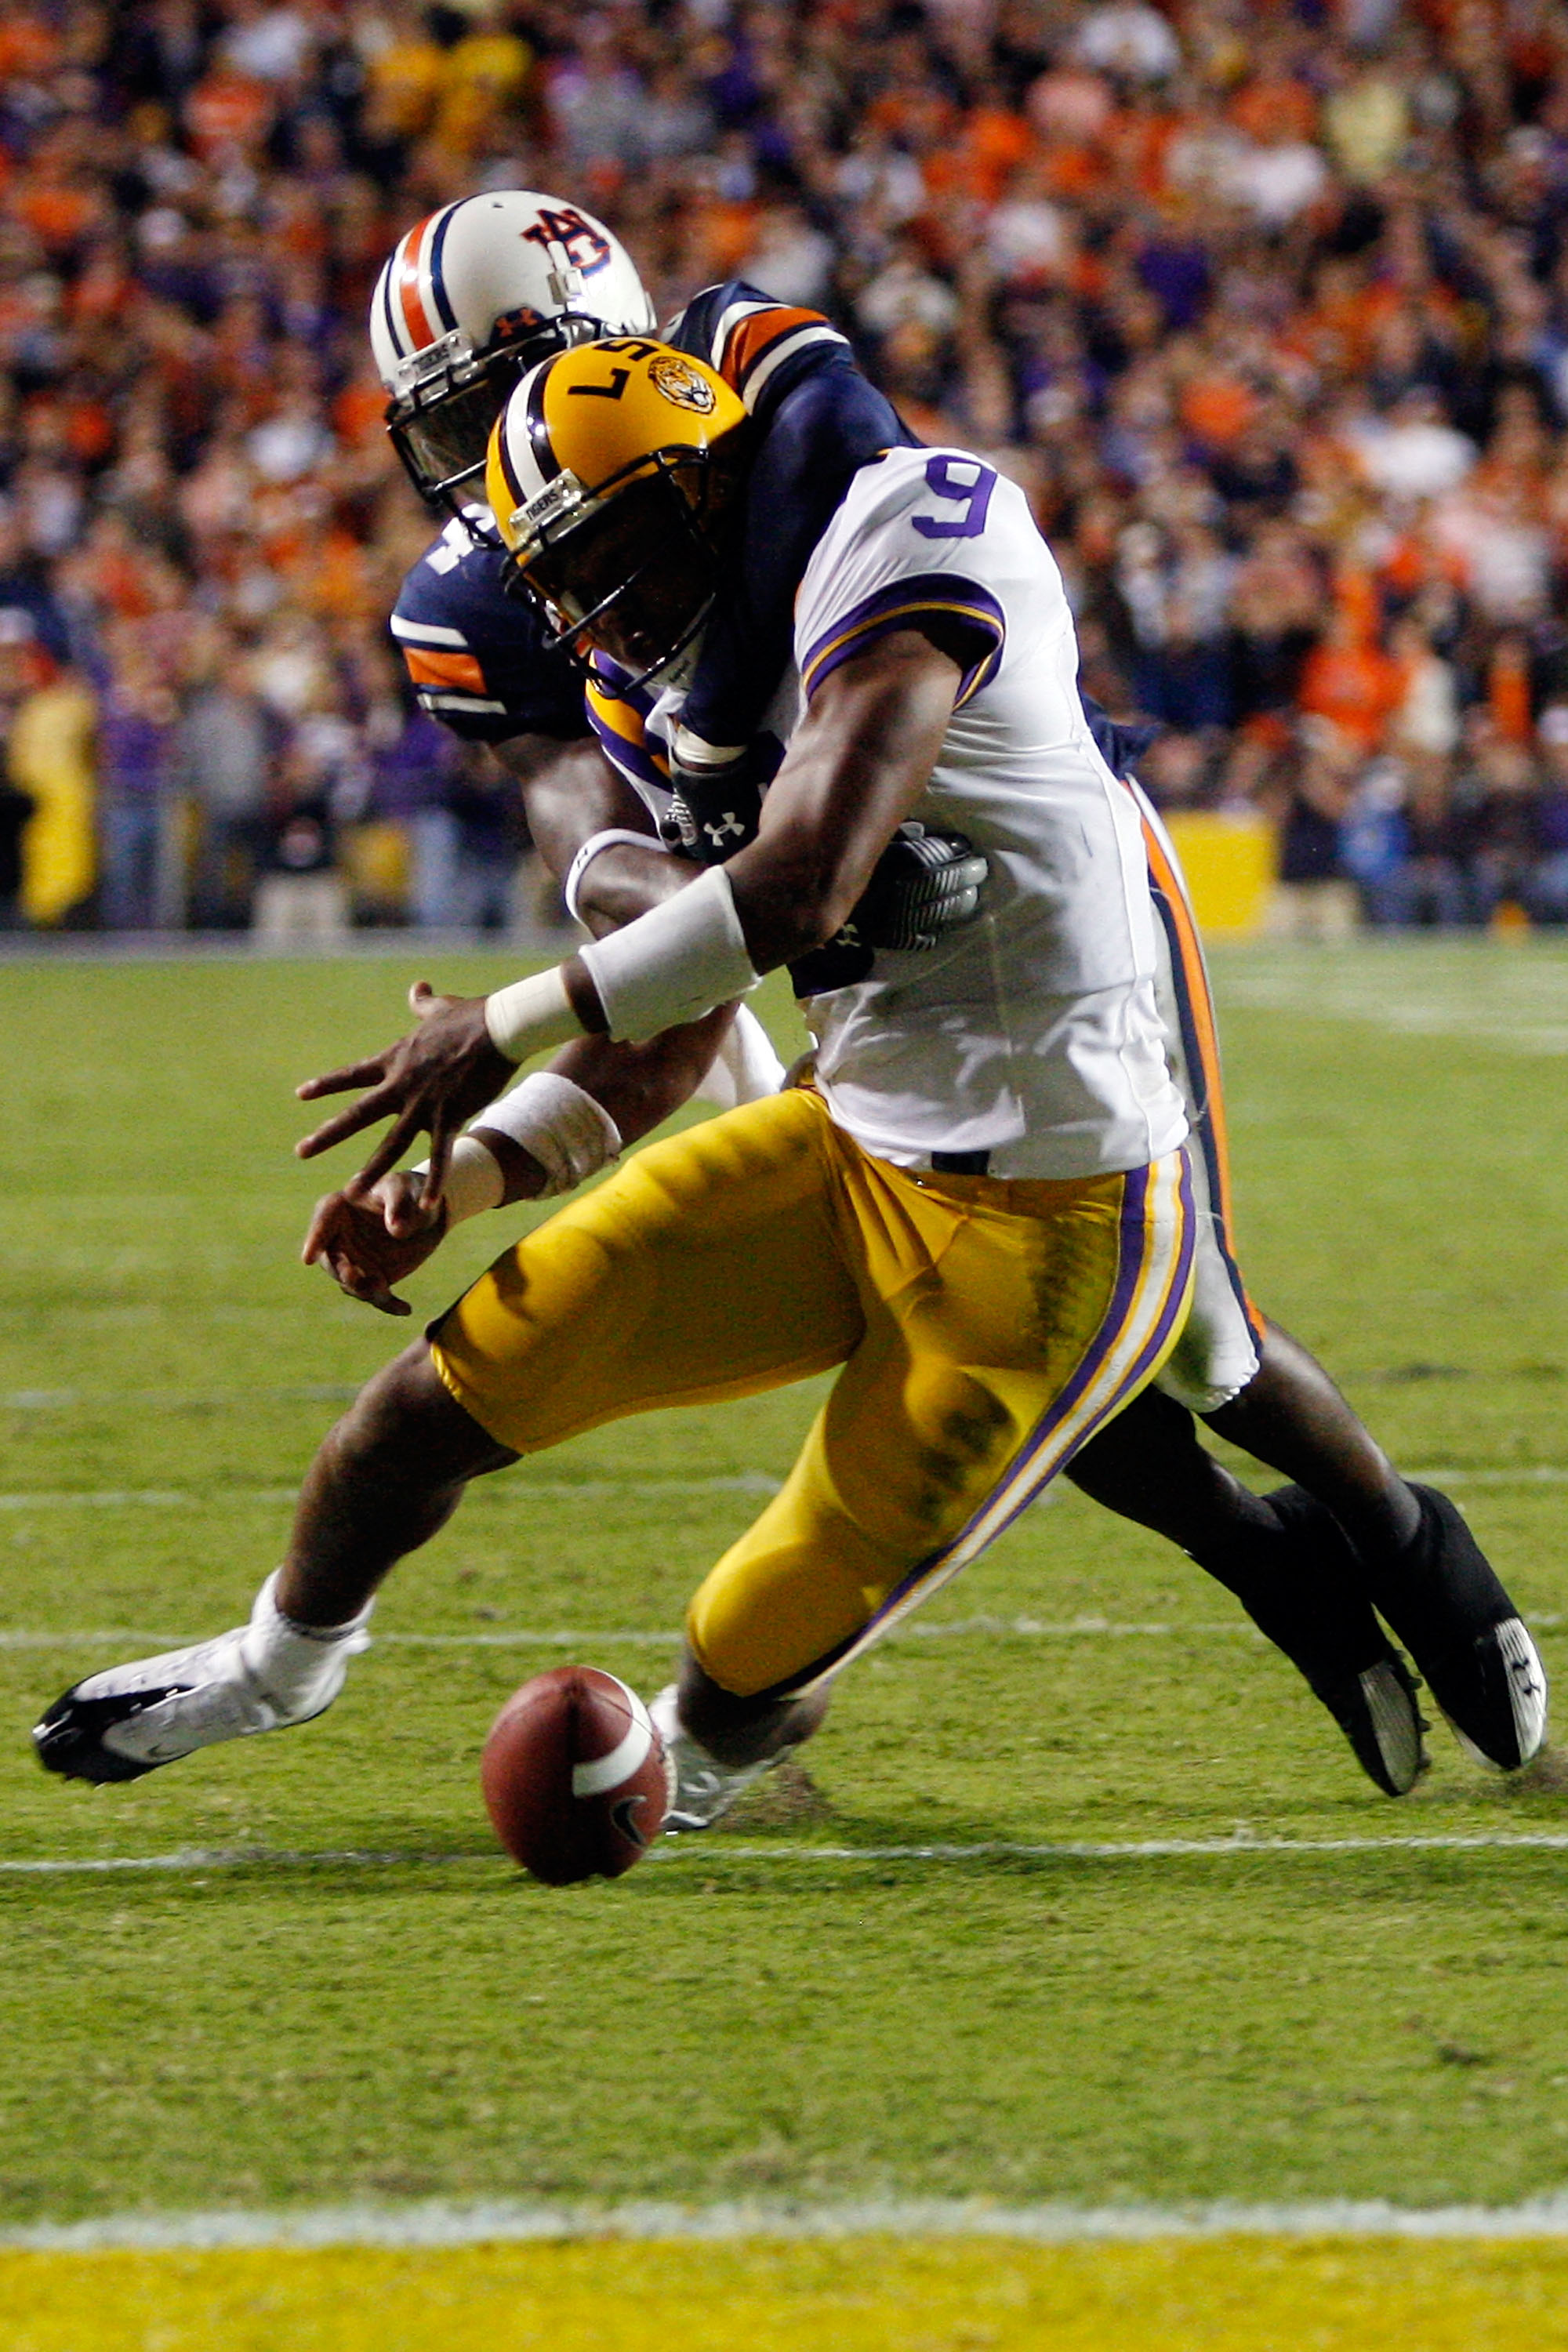 BATON ROUGE, LA - OCTOBER 24:  Jordan Jefferson #9 of the Louisiana State University Tigers is stripped of the ball by Zac Etheridge #4 of the Auburn Tigers at Tiger Stadium on October 24, 2009 in Baton Rouge, Louisiana.  (Photo by Chris Graythen/Getty Im